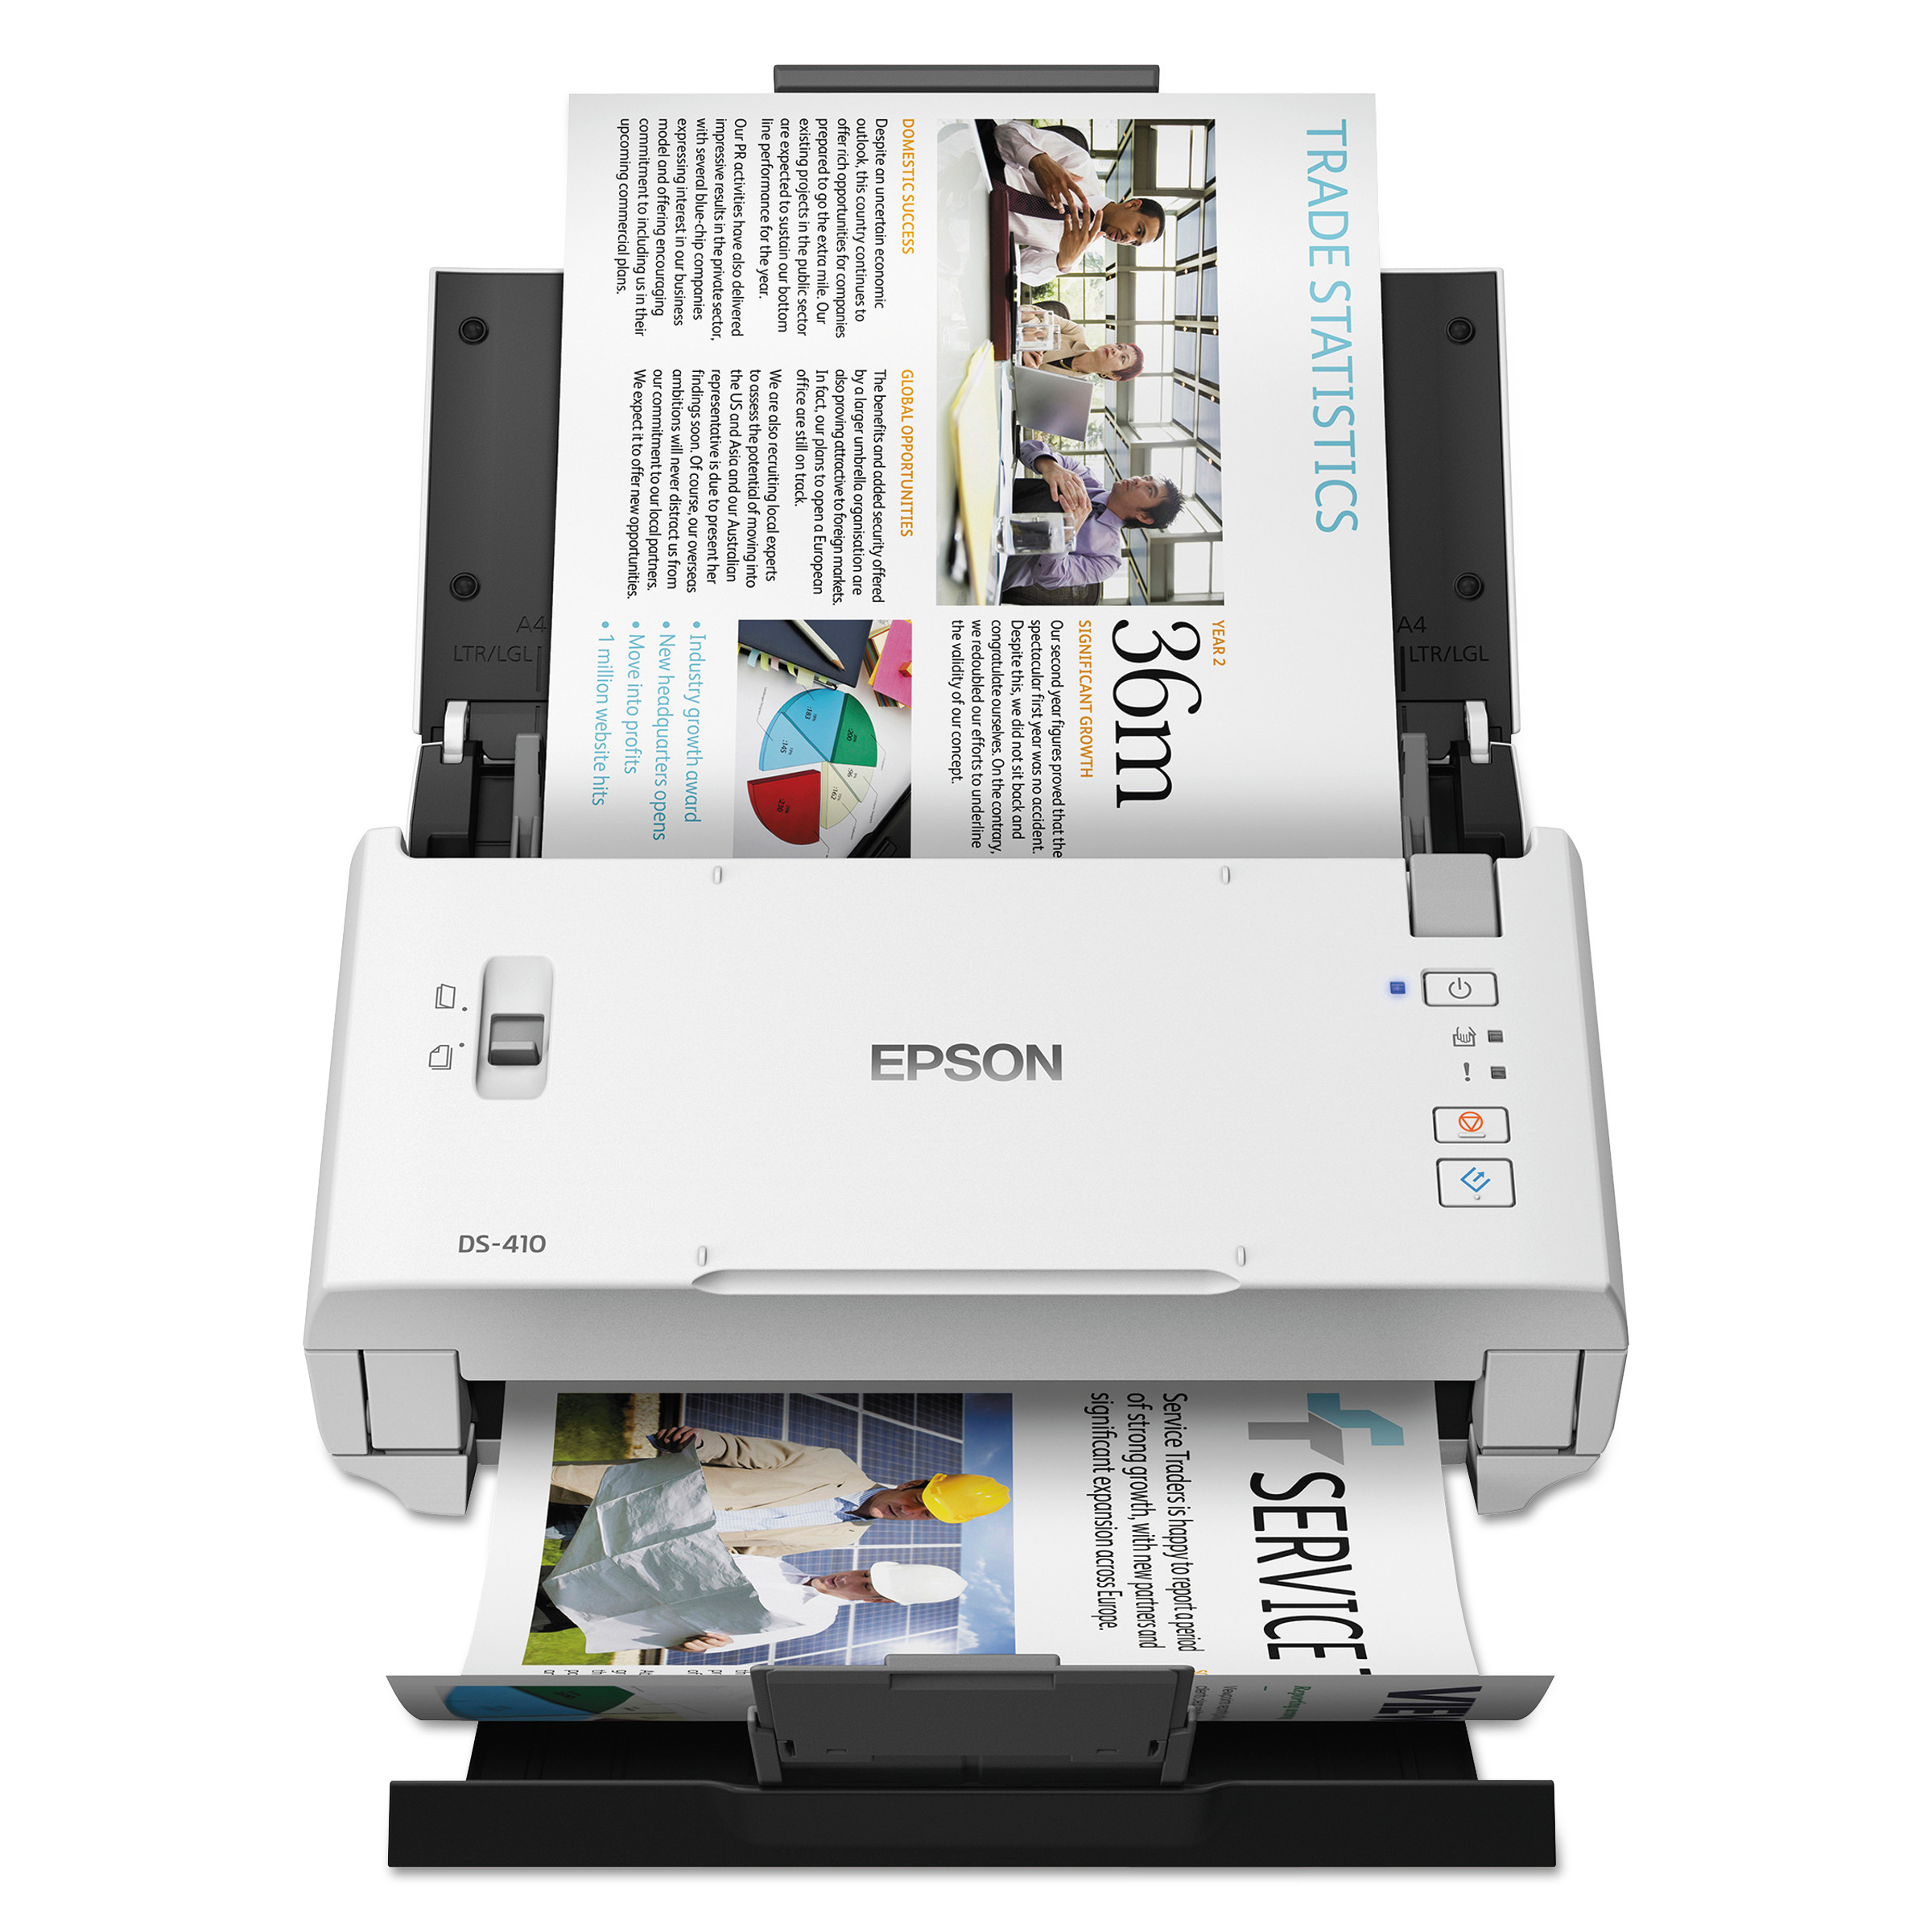 DS-410 Document Scanner, 600 dpi Optical Resolution, 50-Sheet Duplex Auto  Document Feeder